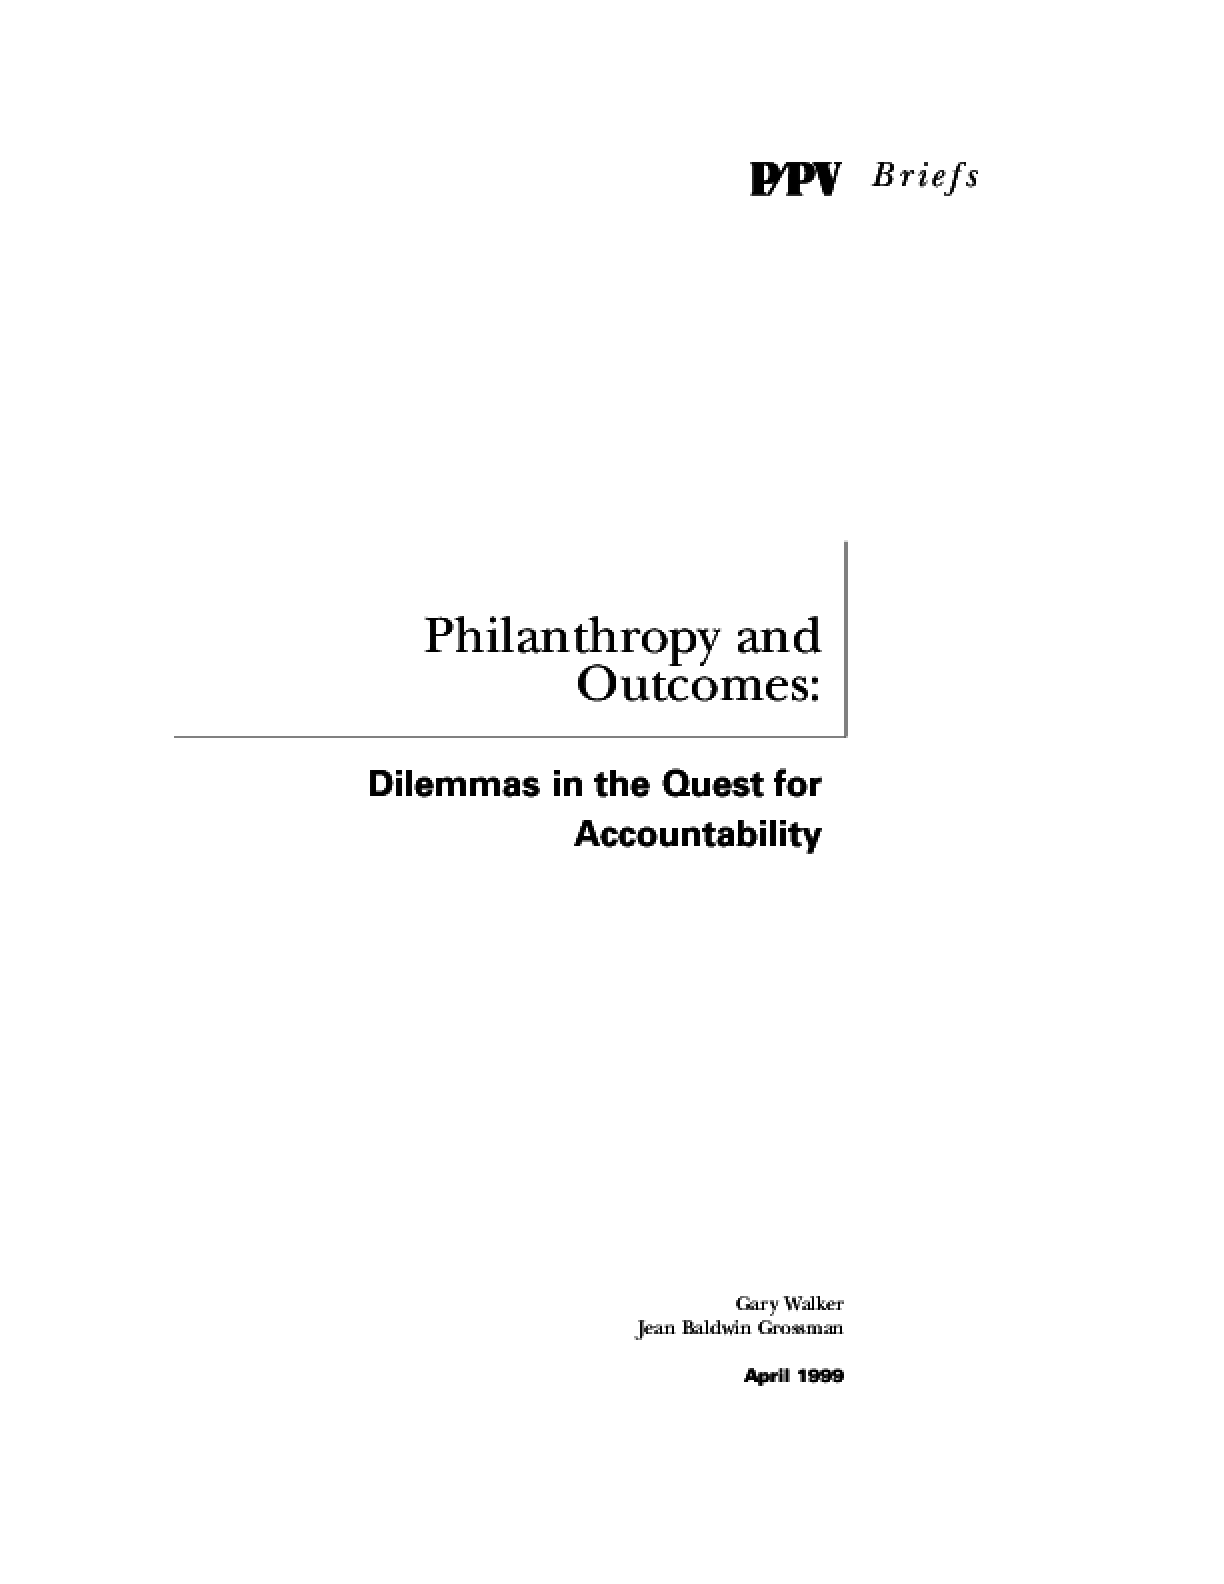 Philanthropy and Outcomes: Dilemmas in the Quest for Accountability